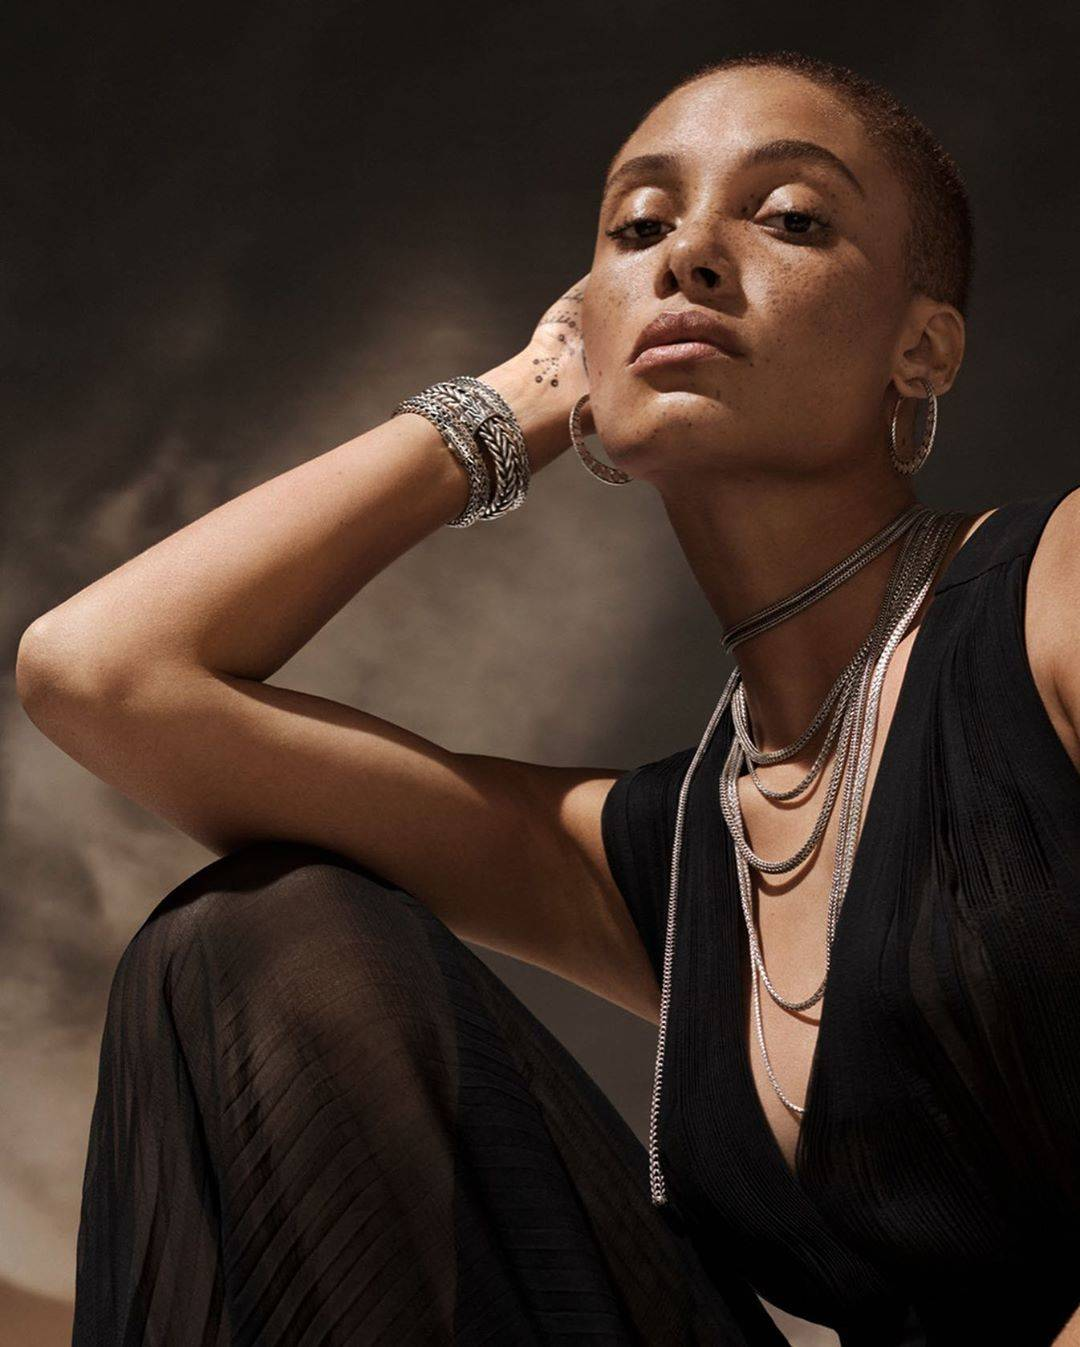 These beautiful pictures of Adwoa Aboah will surely take your breath away